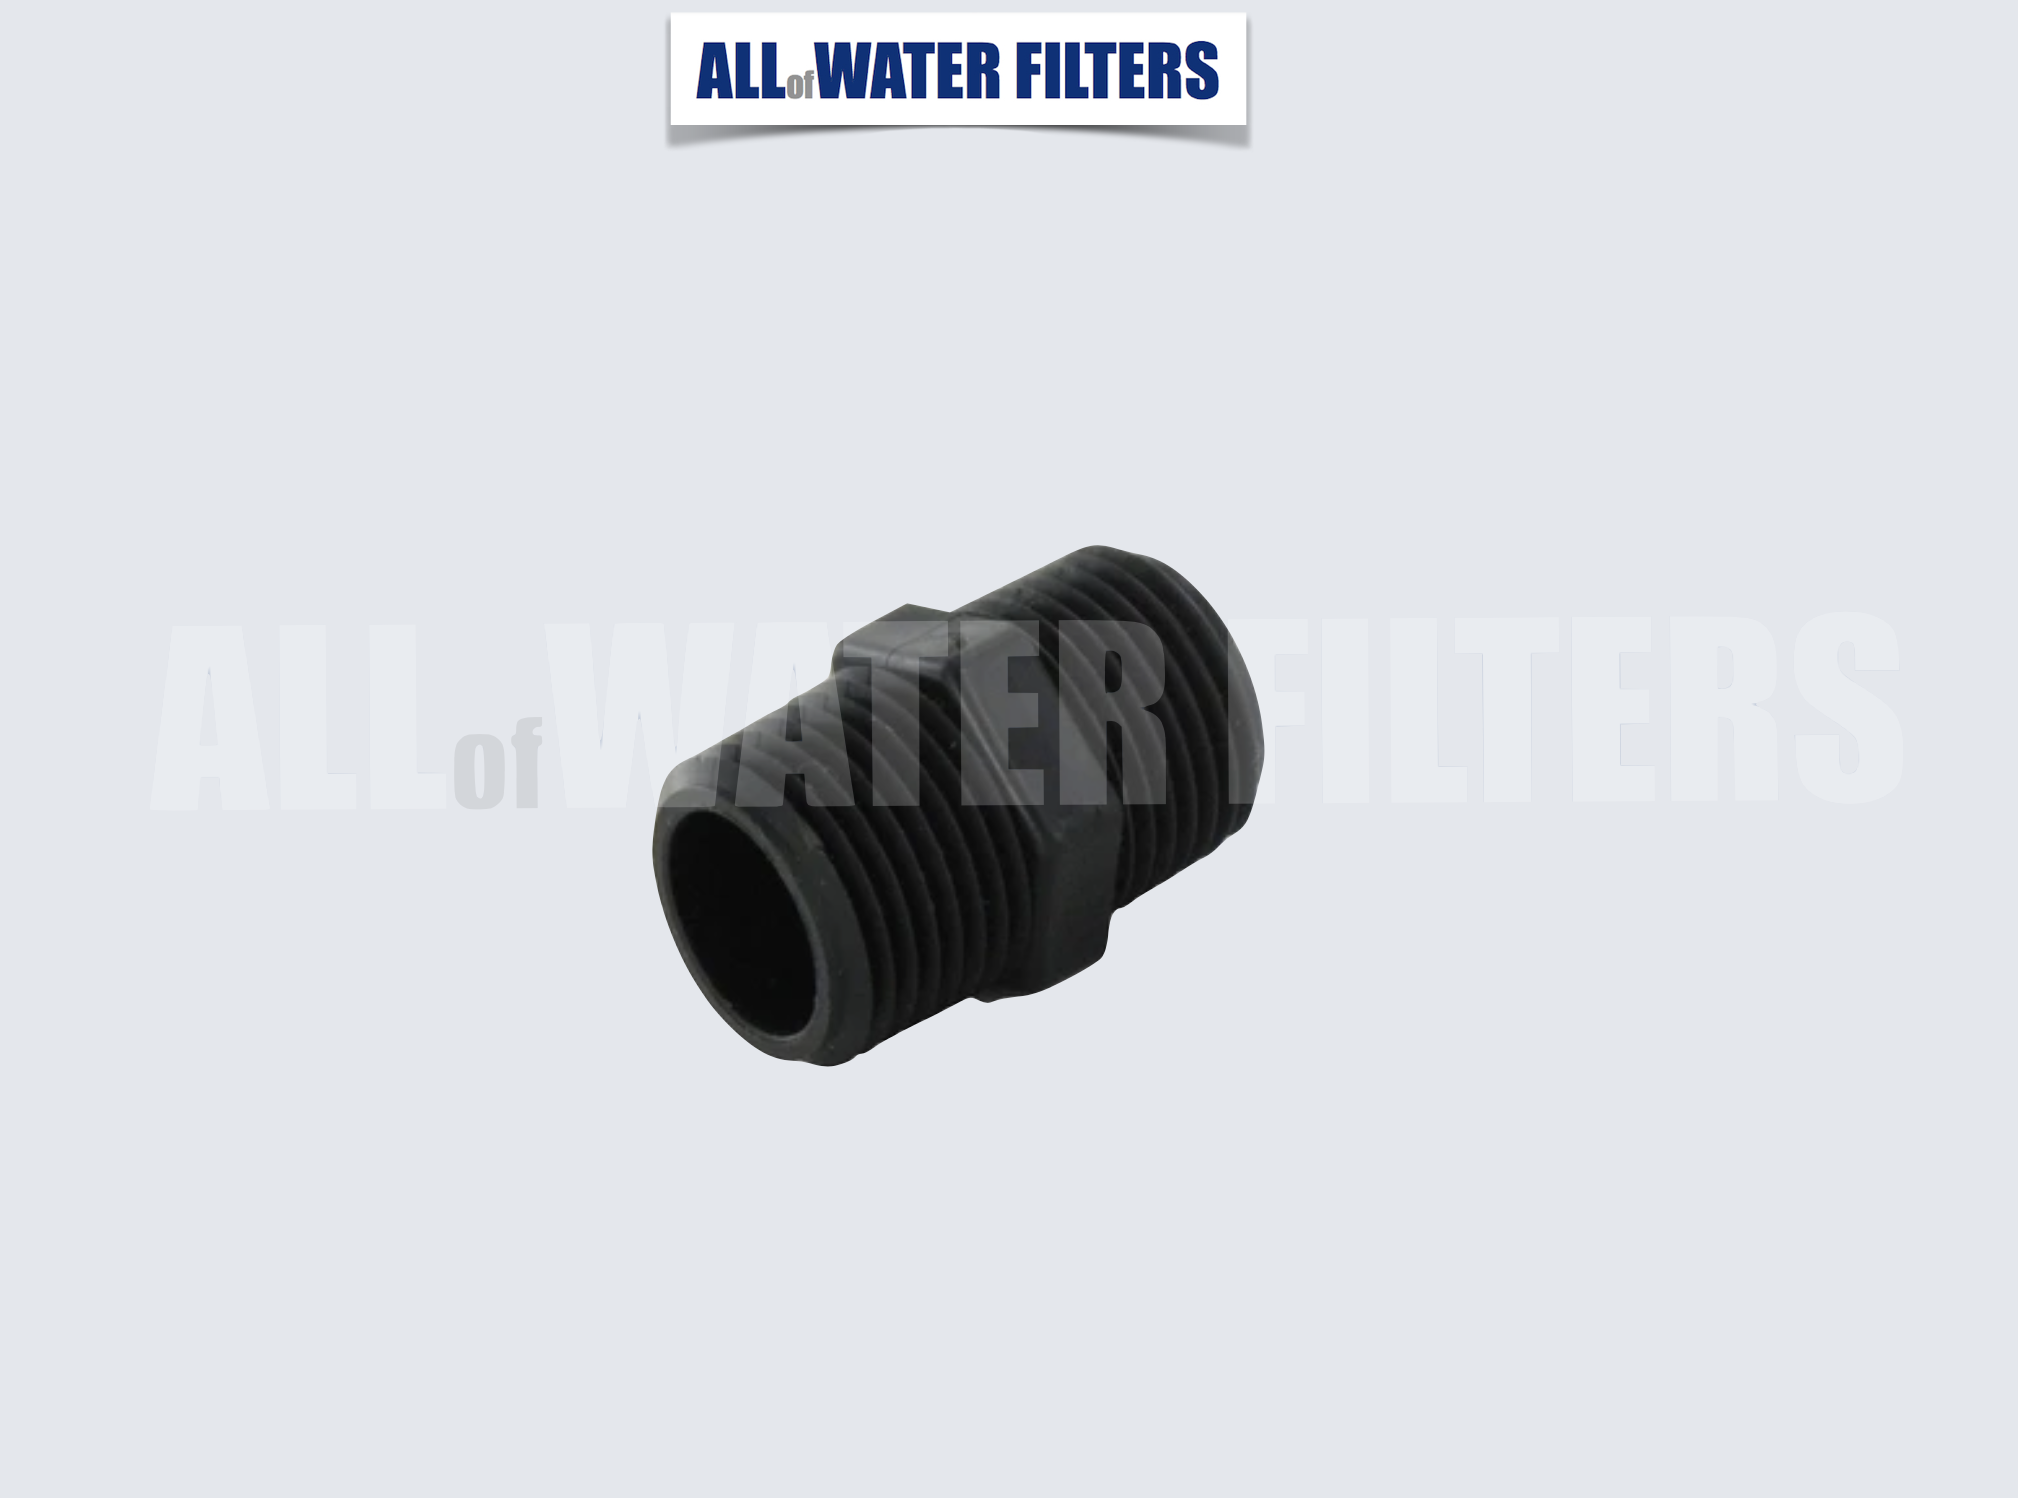 straight-housing-connector-1''-to-1''-25mm